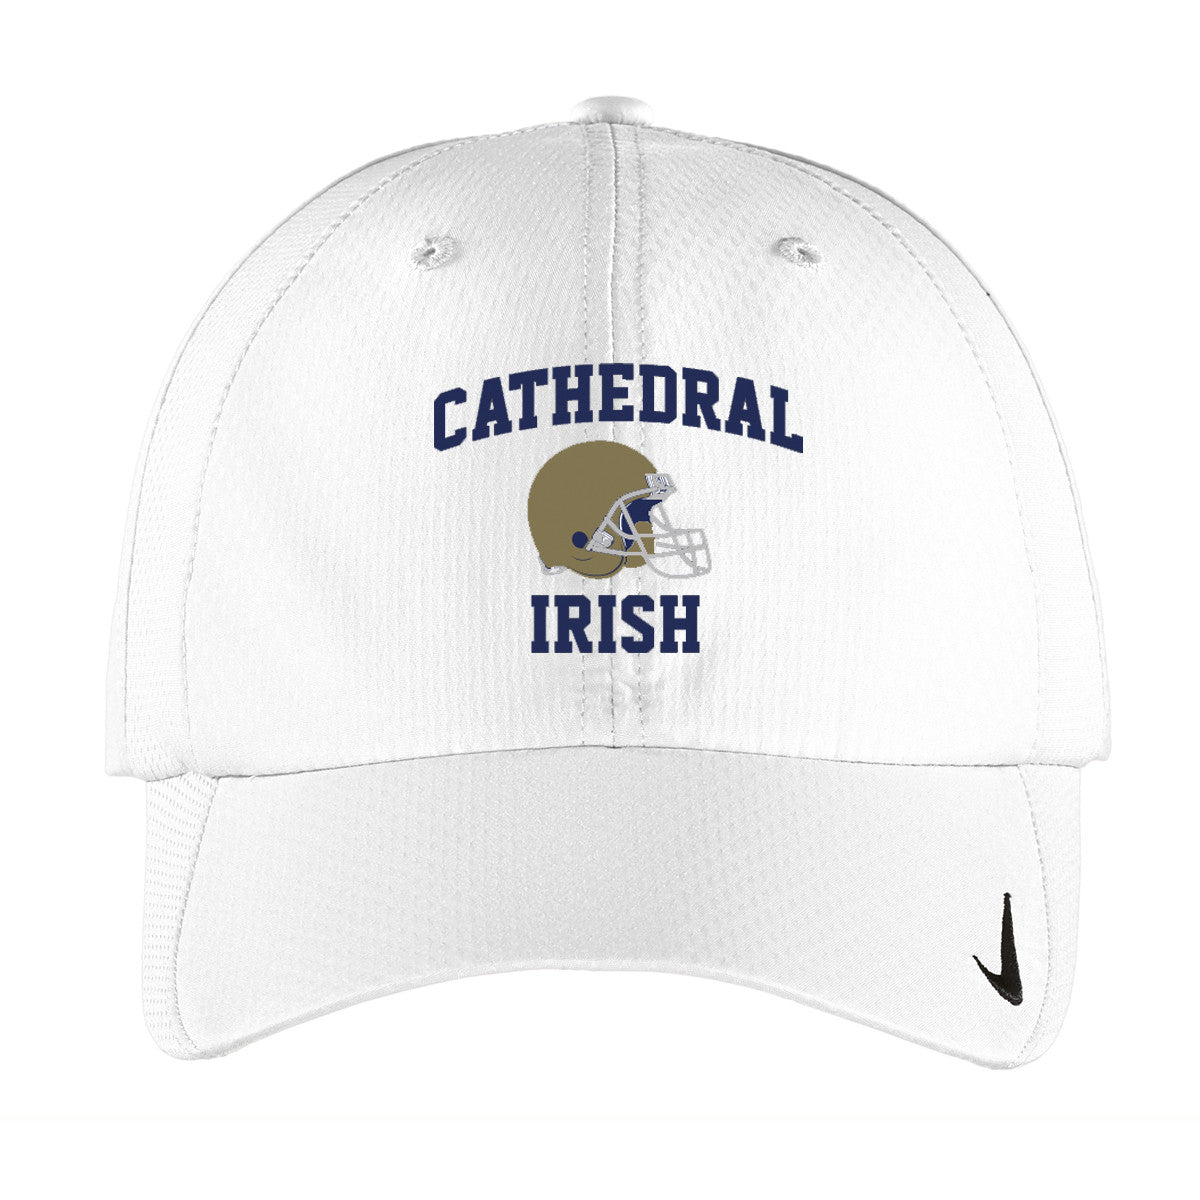 Cathedral - 247077 Nike Sphere Dry Cap - OneStop Marketing Indianapolis 0e07f9bb0a07